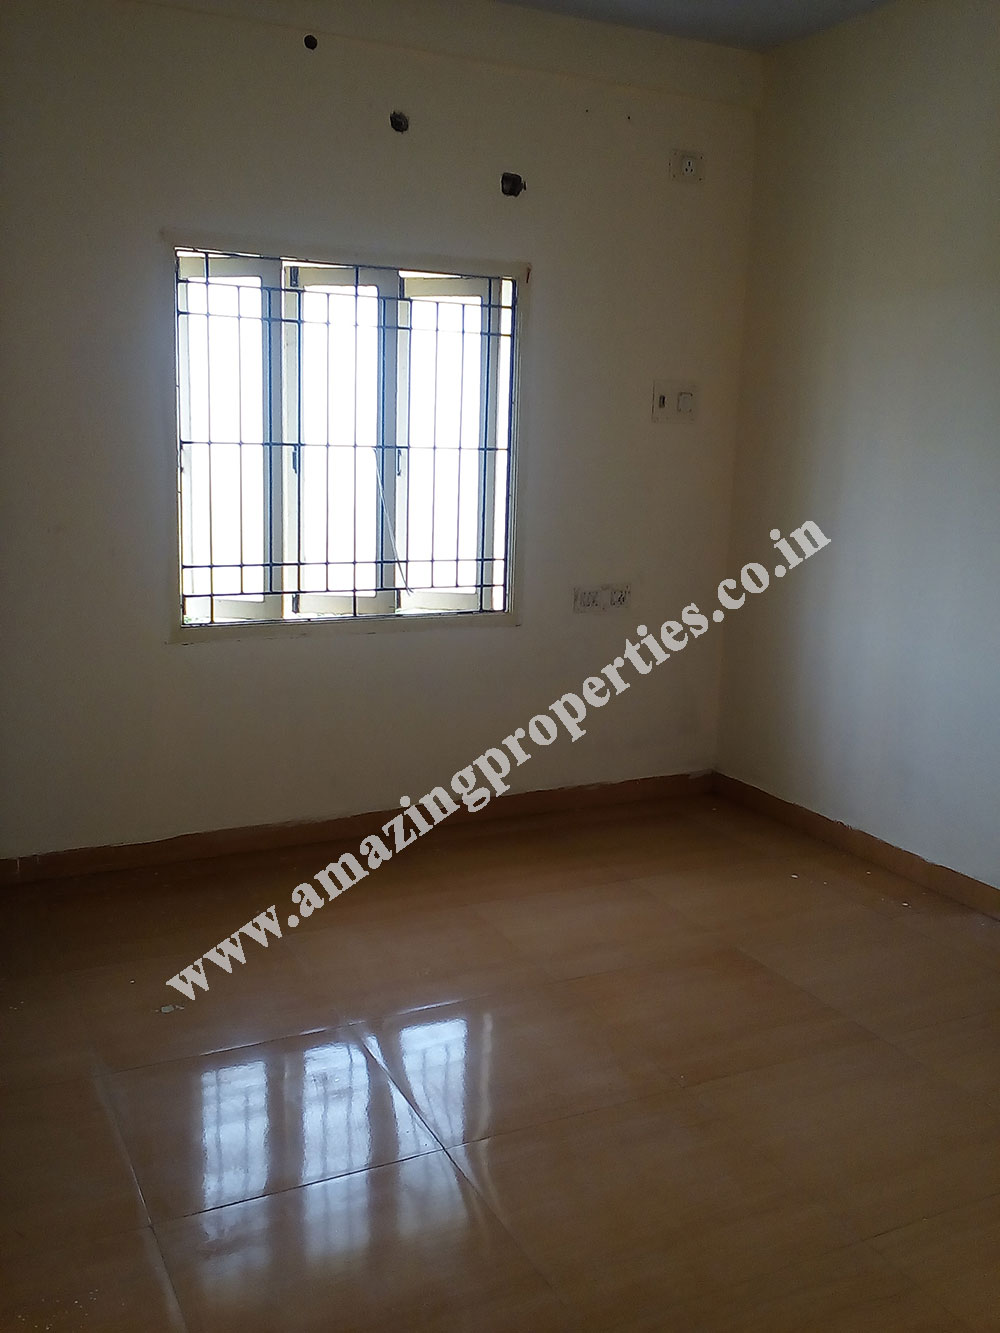 Flat for sale at NGO A Colony, Tirunelveli